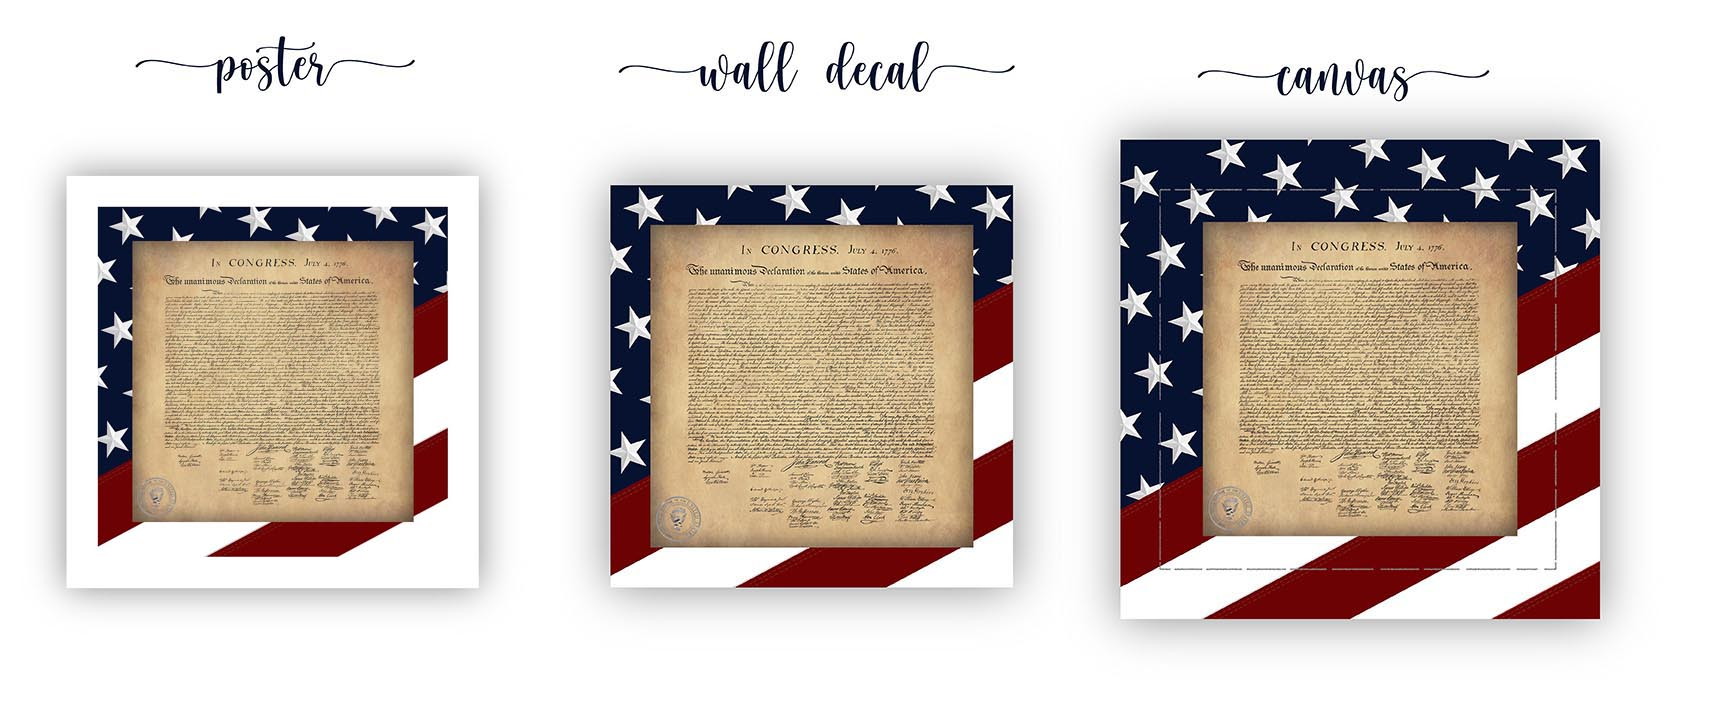 Framed Wall Art - Framed Constitution of the United States Artwork - Posters, Wall Decals and Canvas'